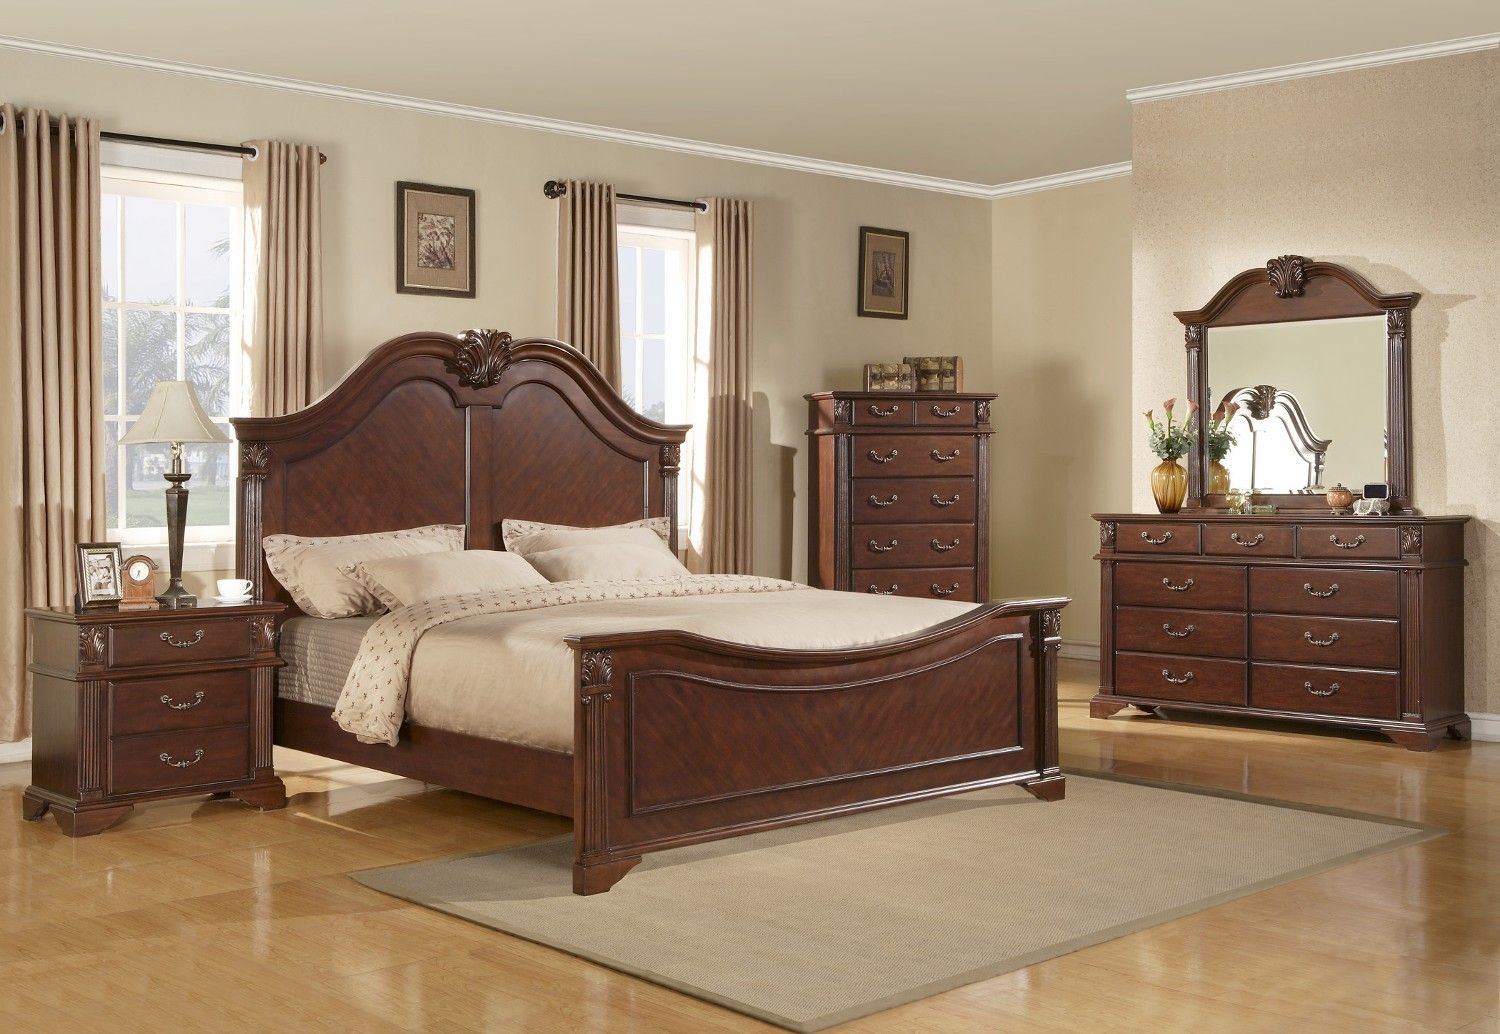 Muebles Rey Dormitorios Queen Panel Bed Cherry At North Carolina Furniture